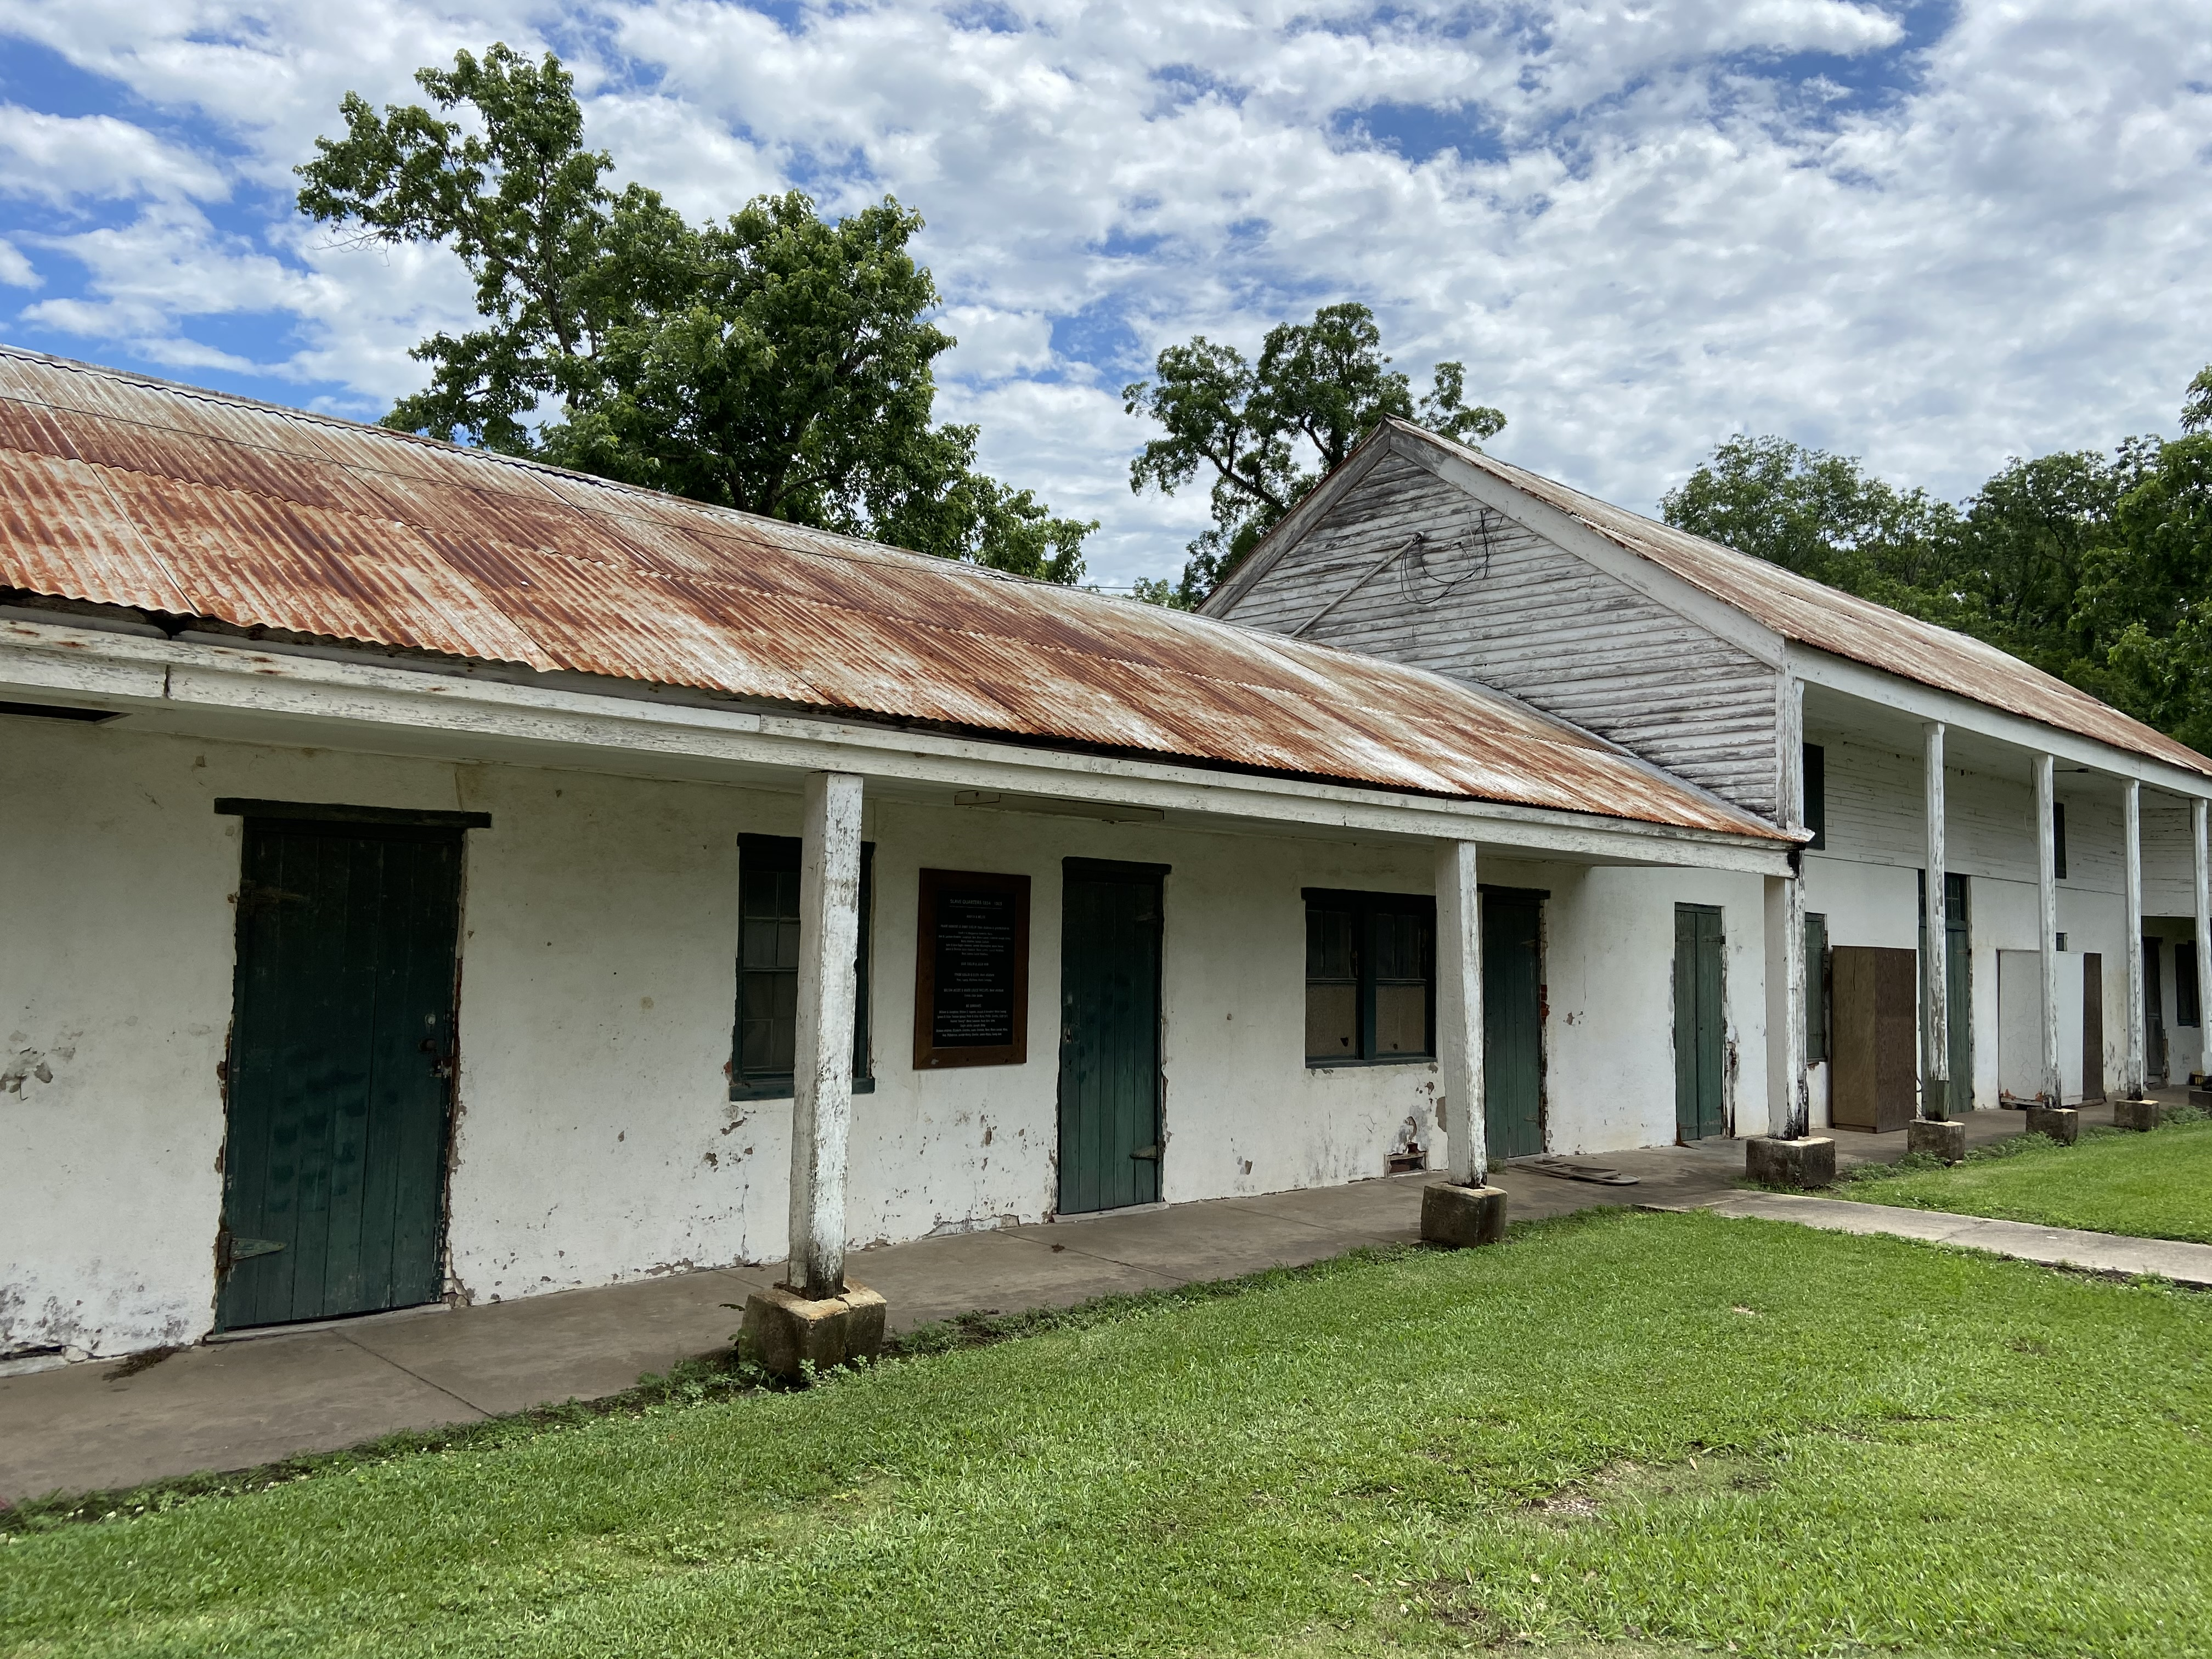 In 1834, the first brick dwellings were constructed for the enslaved persons at the Academy. These quarters are still in existence and now bear a plaque listing the known names of the families and individuals who resided there.